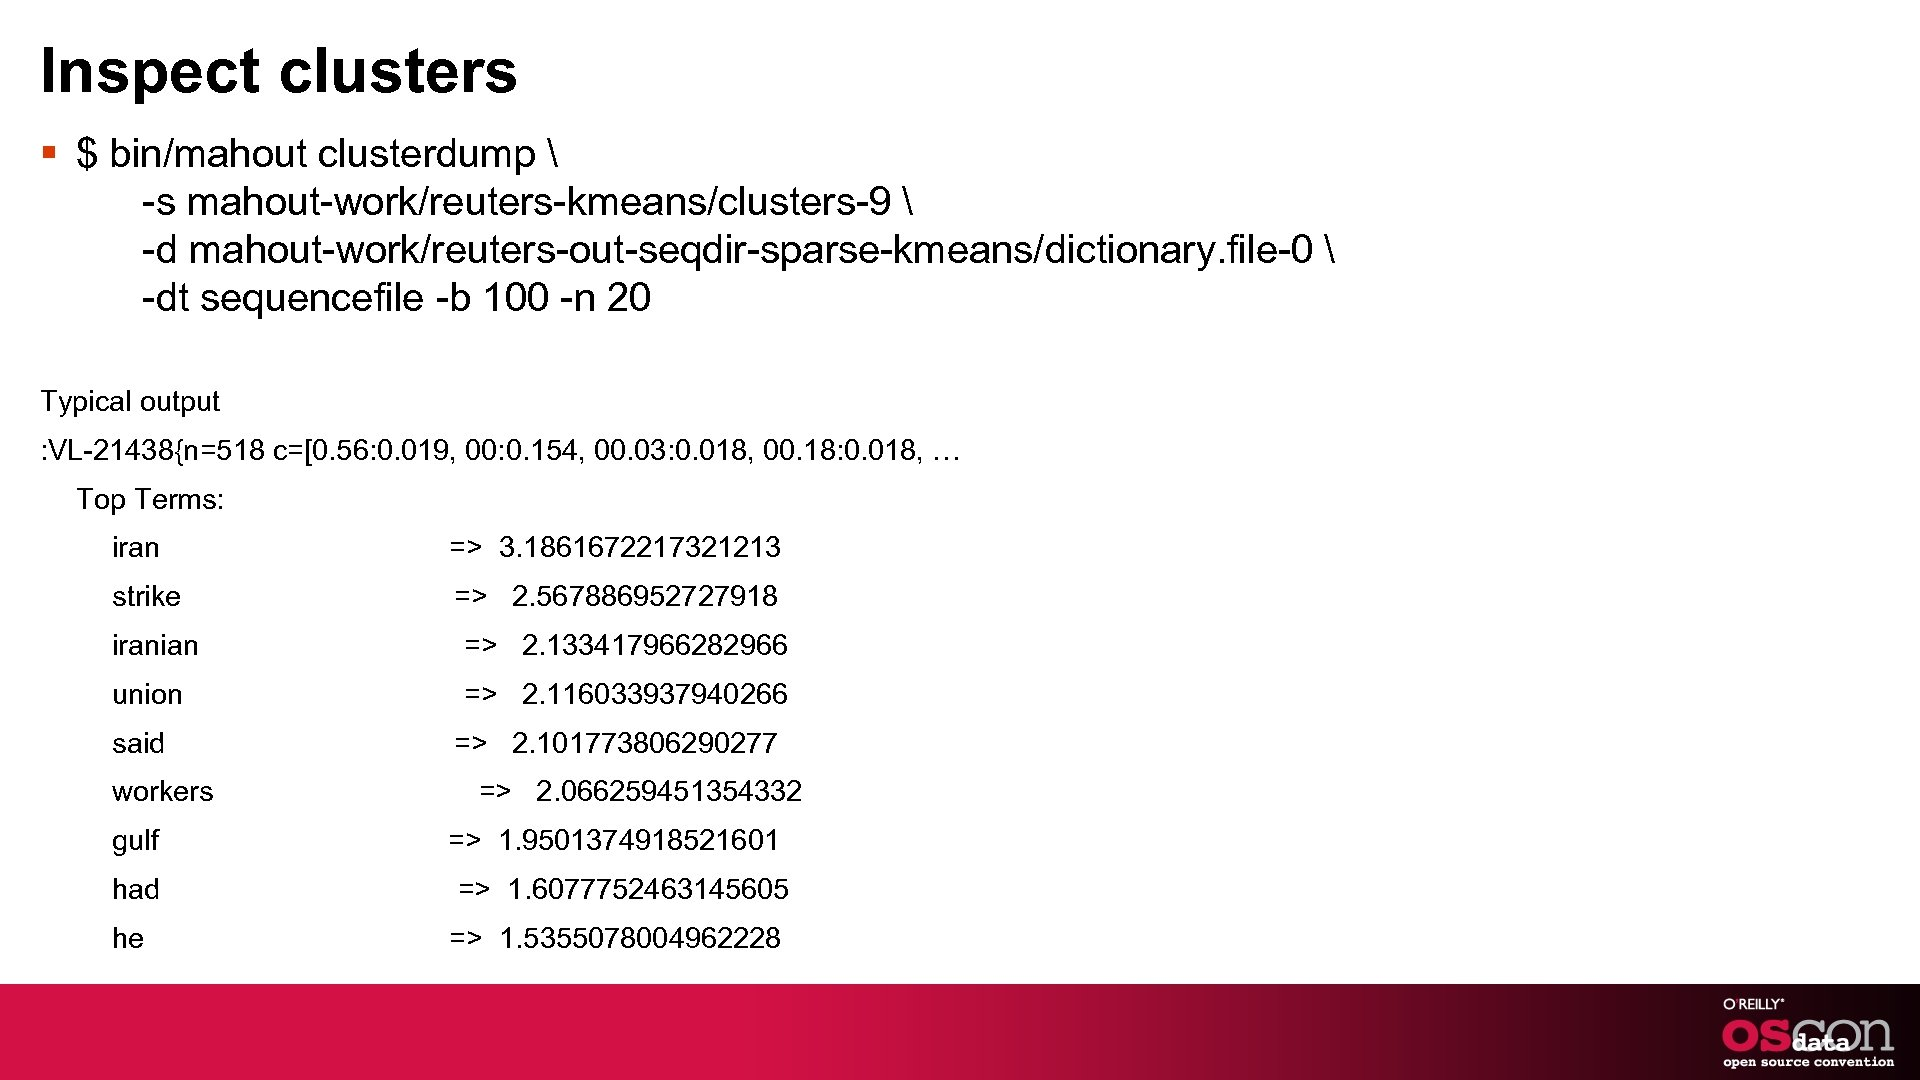 Inspect clusters § $ bin/mahout clusterdump  -s mahout-work/reuters-kmeans/clusters-9  -d mahout-work/reuters-out-seqdir-sparse-kmeans/dictionary. file-0